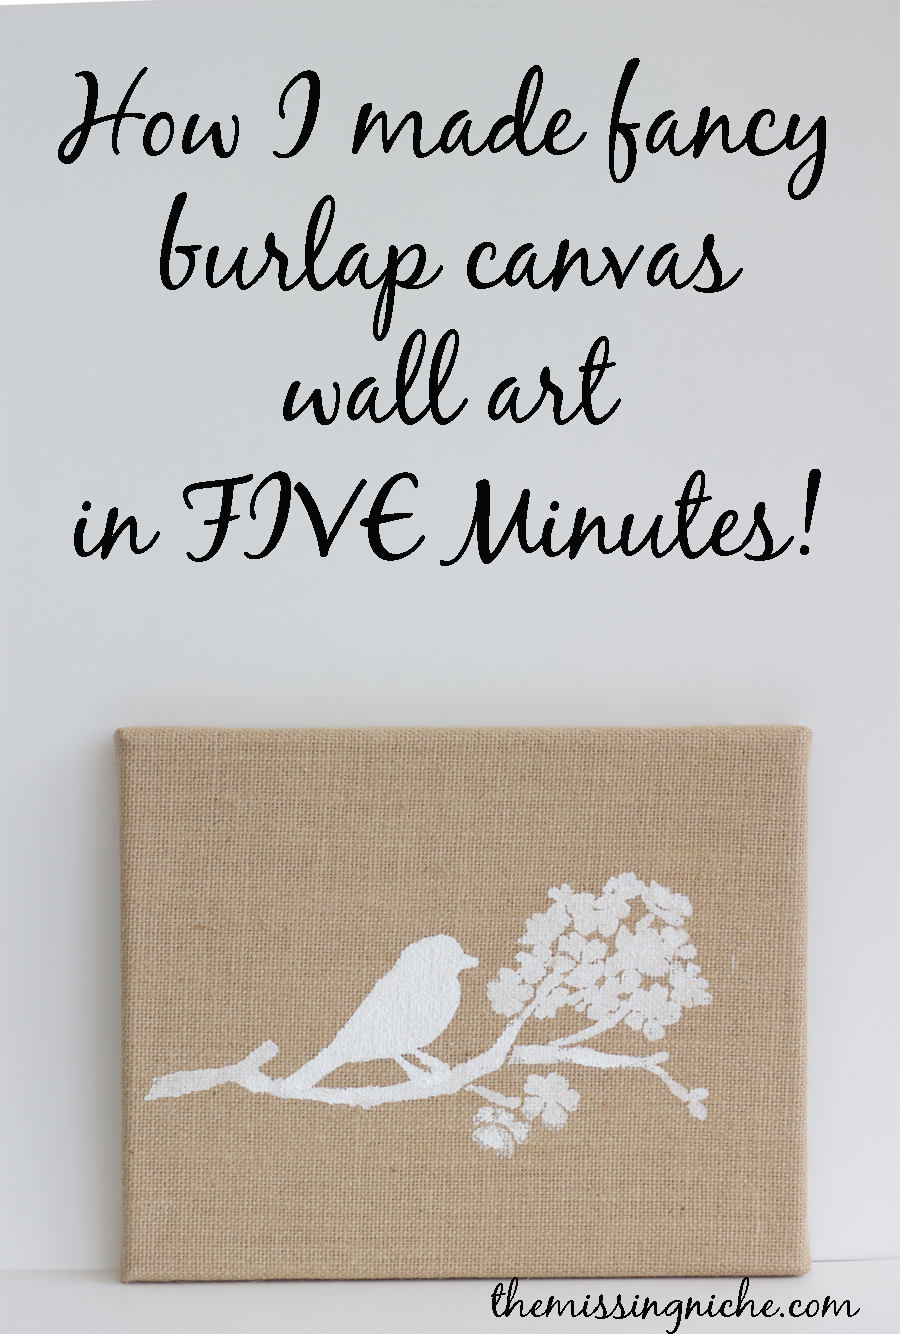 Merveilleux How I Made Fancy Burlap Canvas Wall Art In Five Minutes   The Missing Niche